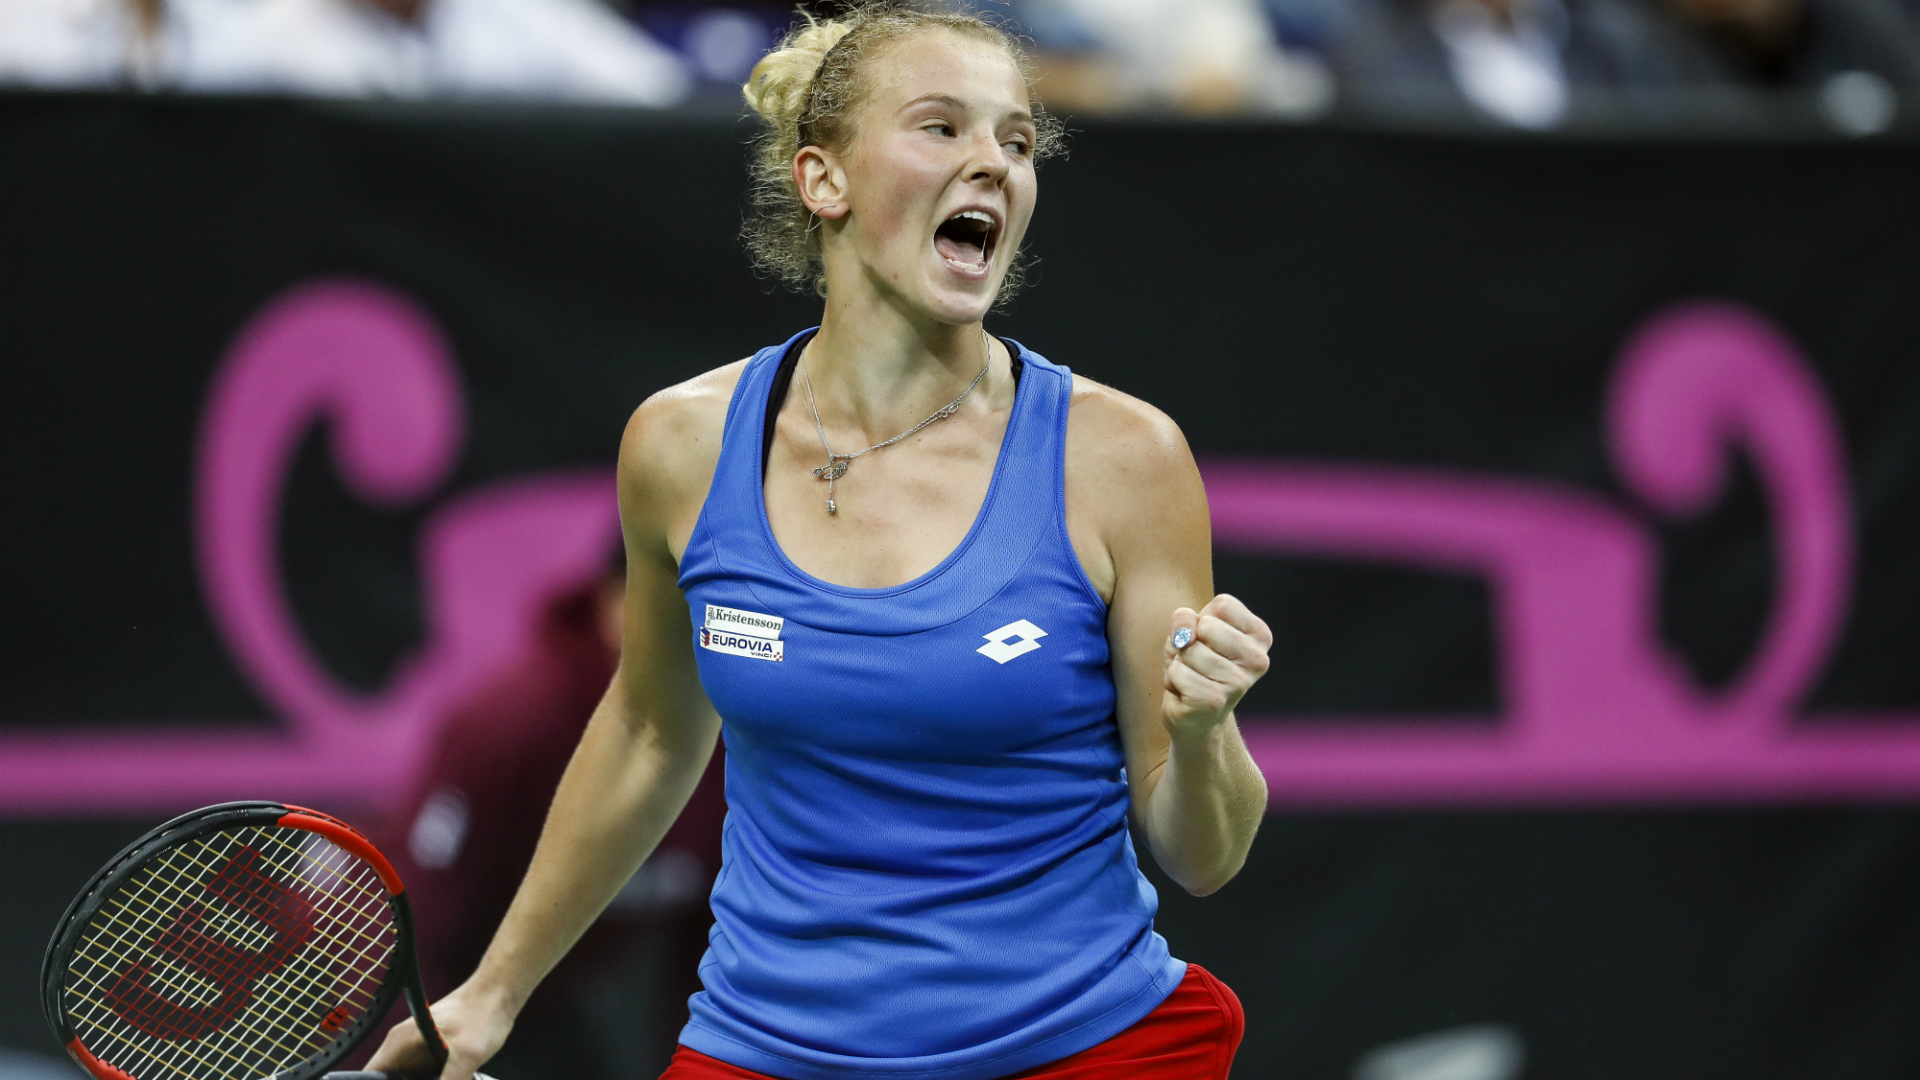 No Kvitova, no problem as Czech Republic claim 2-0 Fed Cup final lead